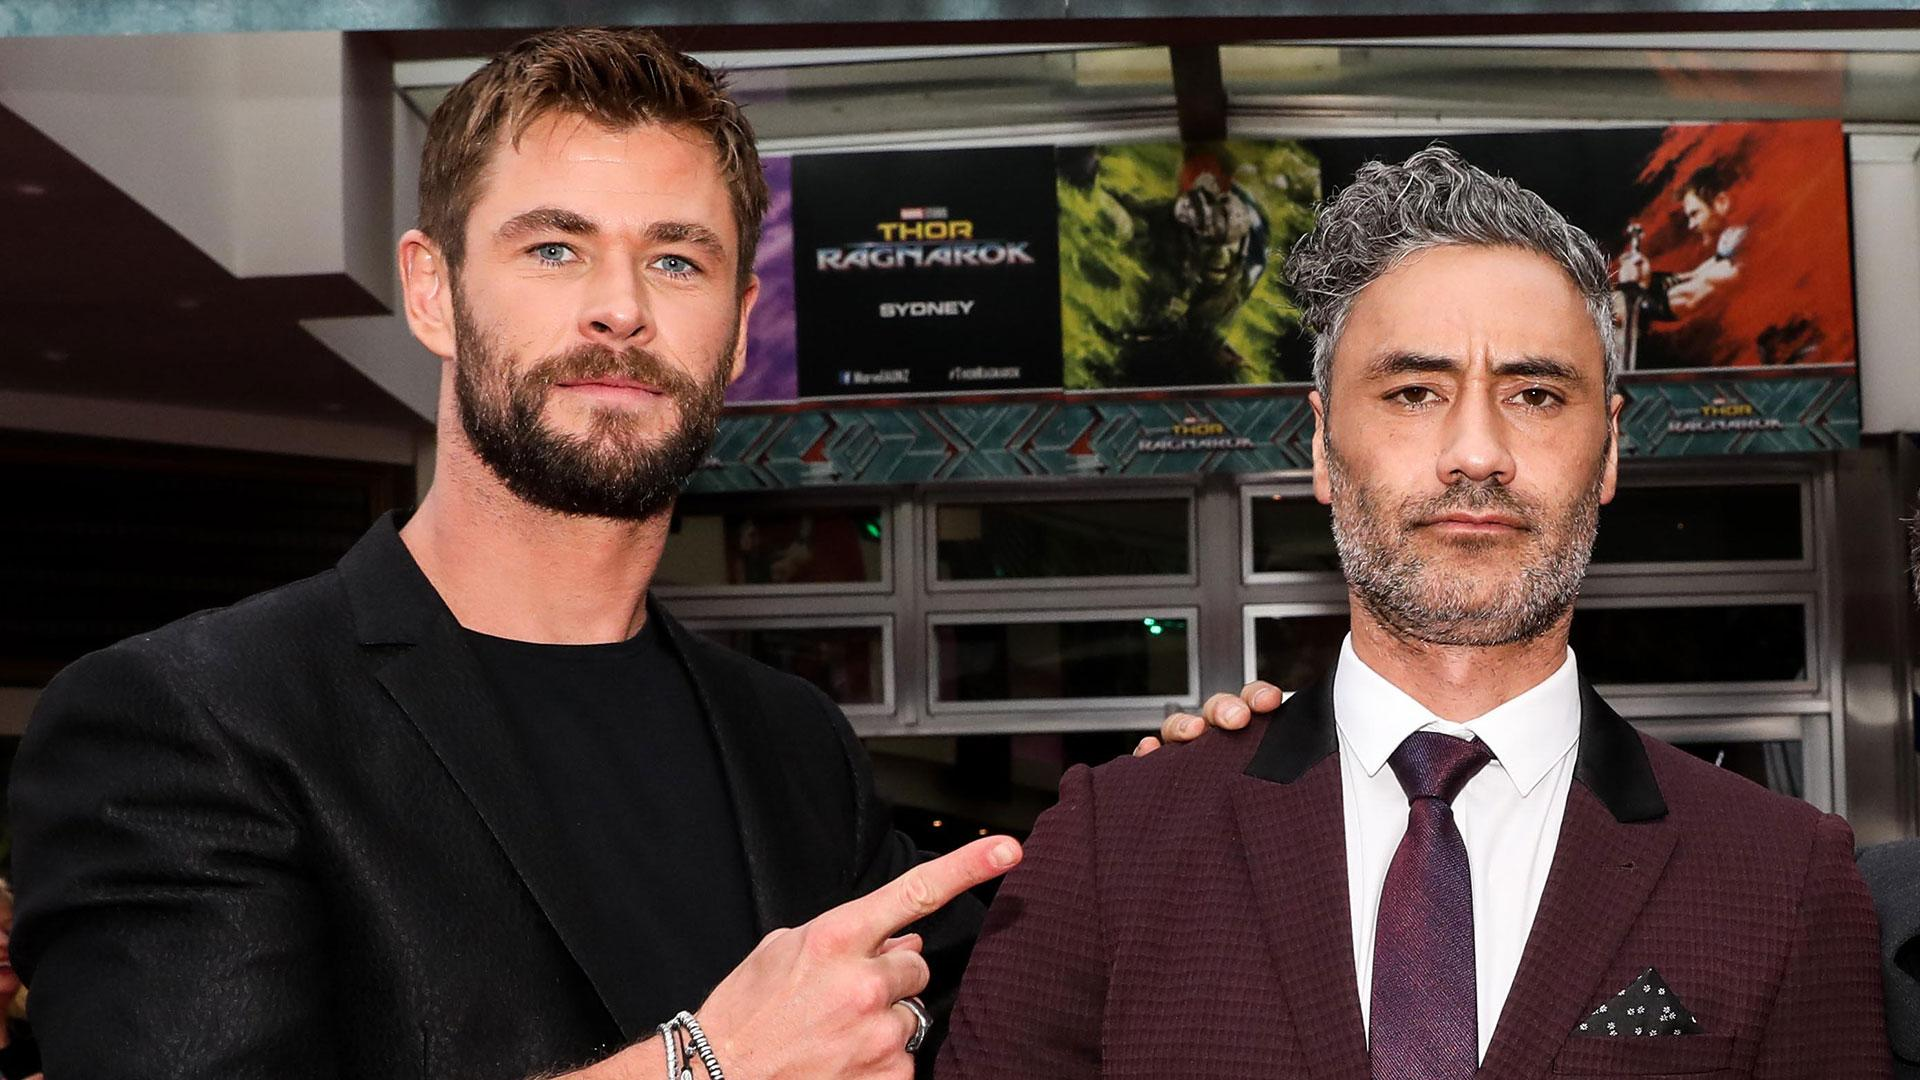 Chris Hemsworth: I was exhausted and underwhelmed with Thor